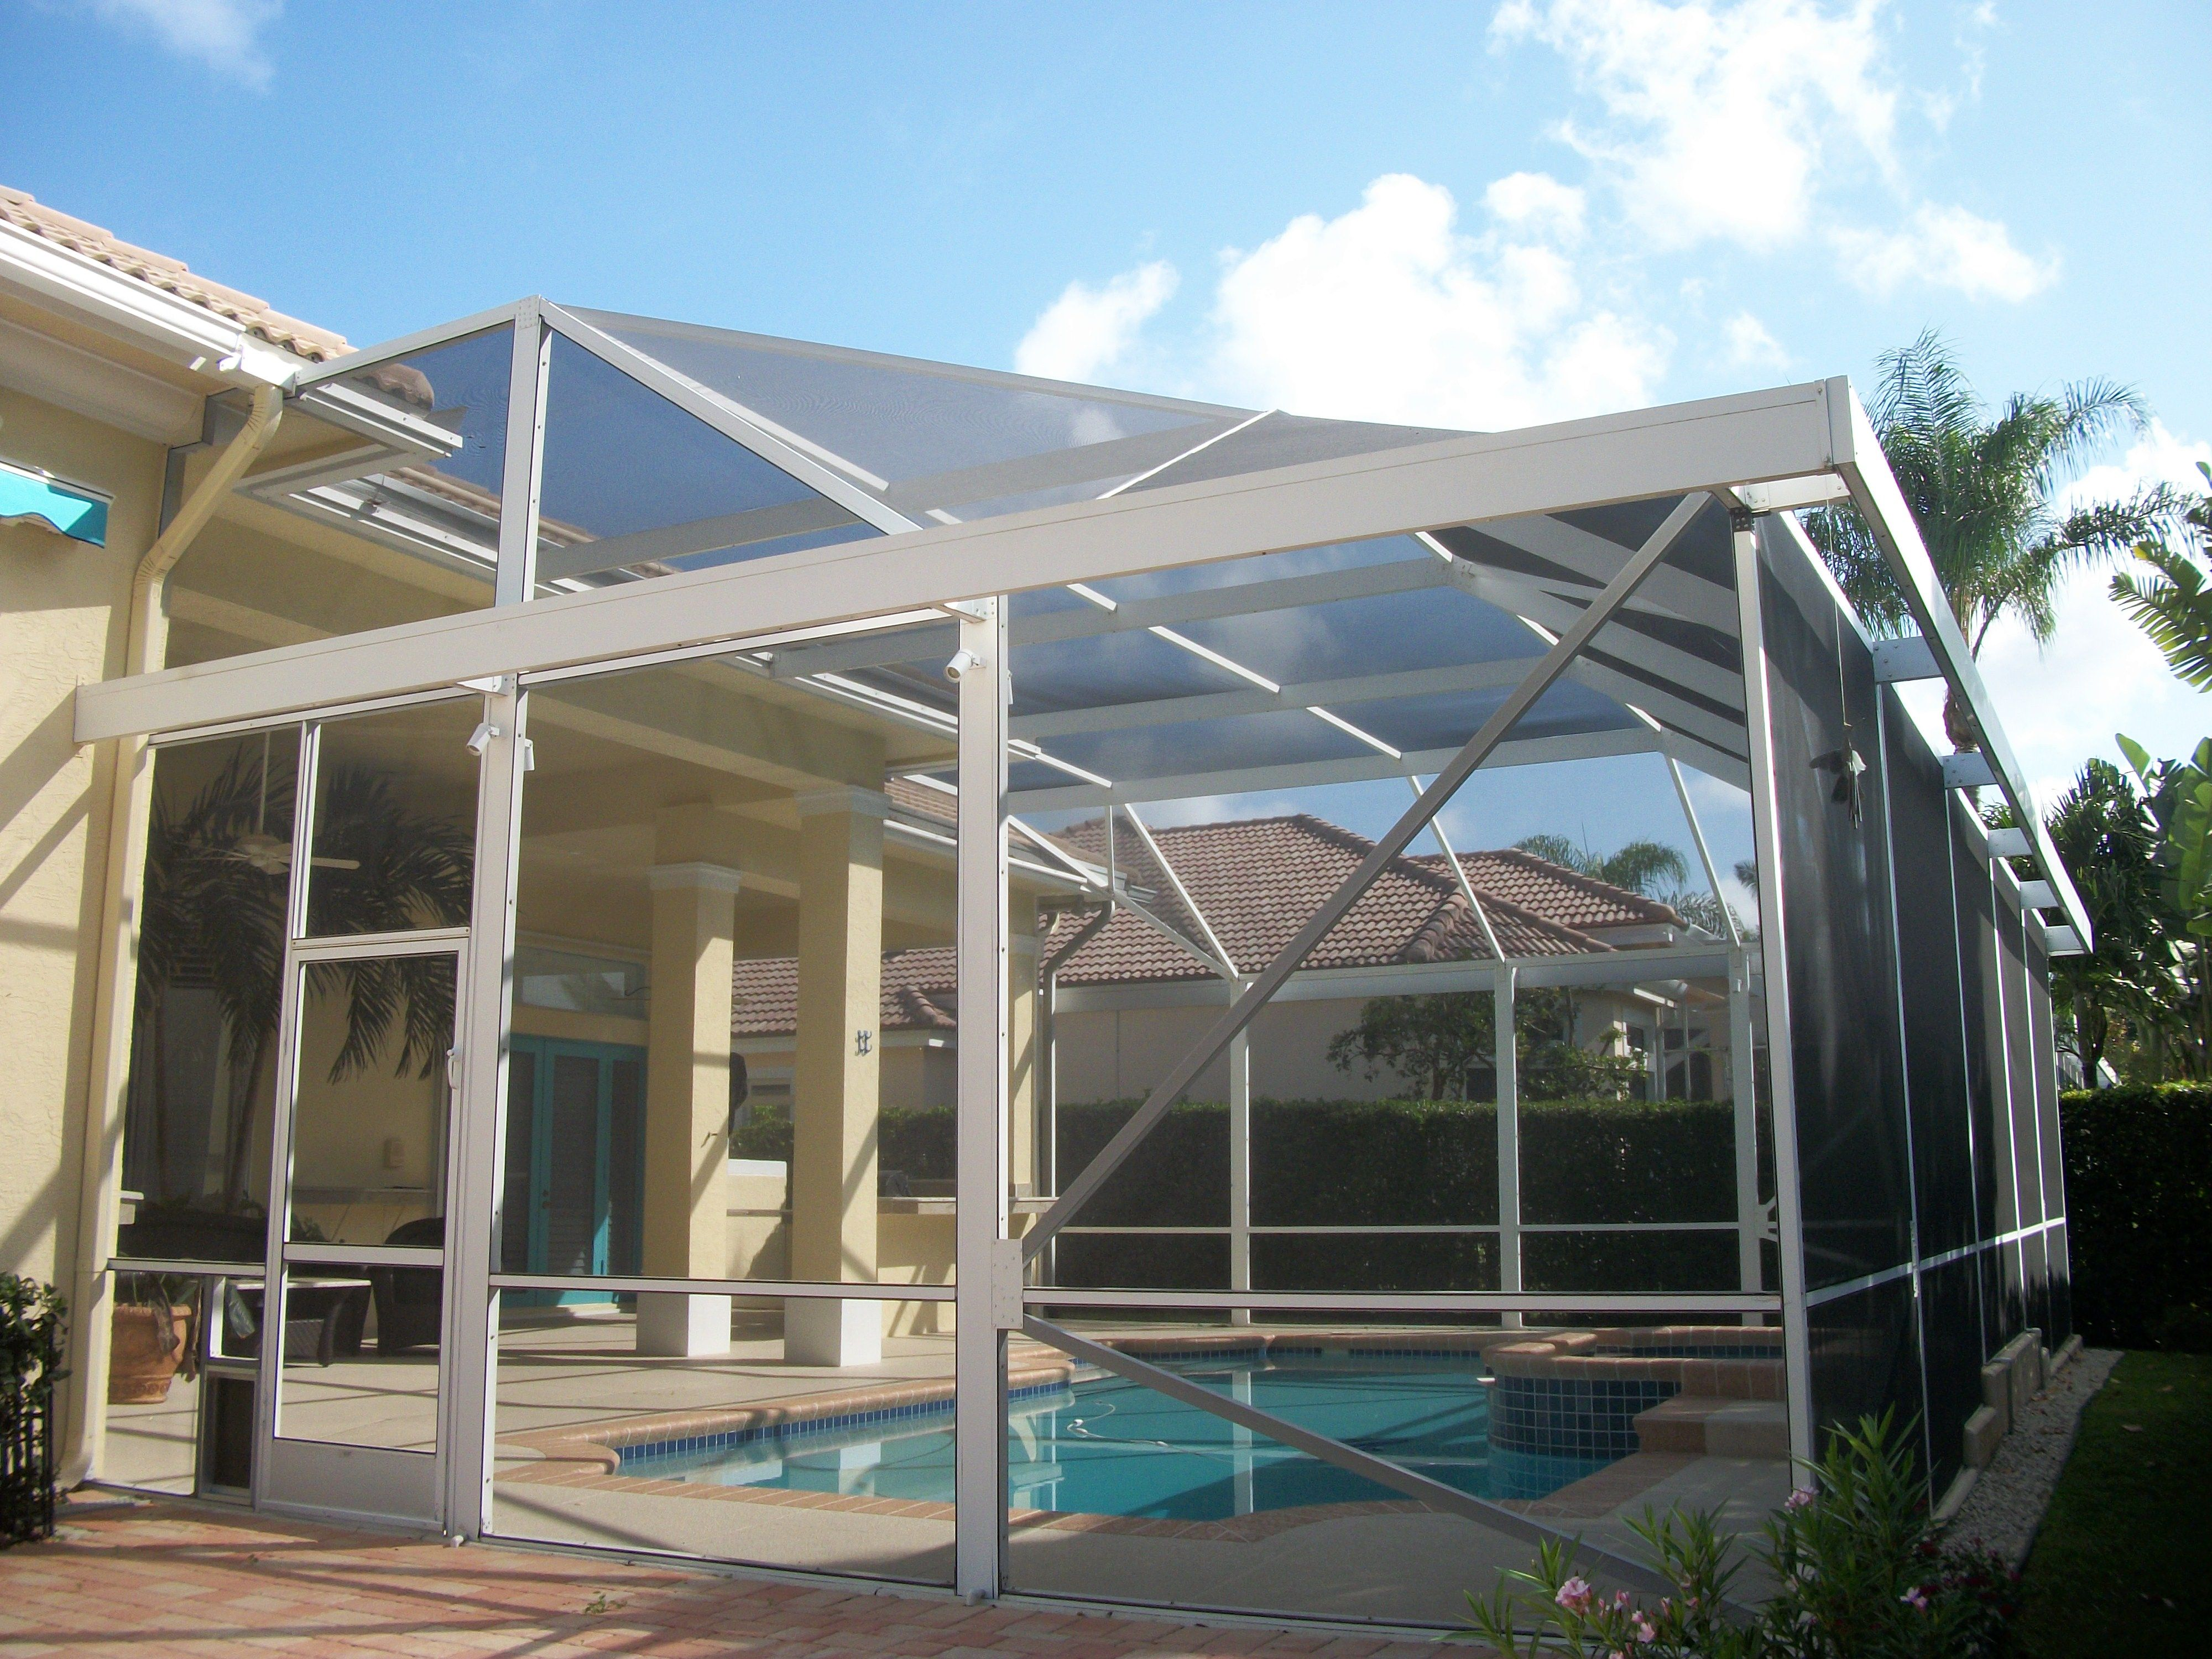 Pool Screen Enclosure With Extra Awning Arround The Top Edge For